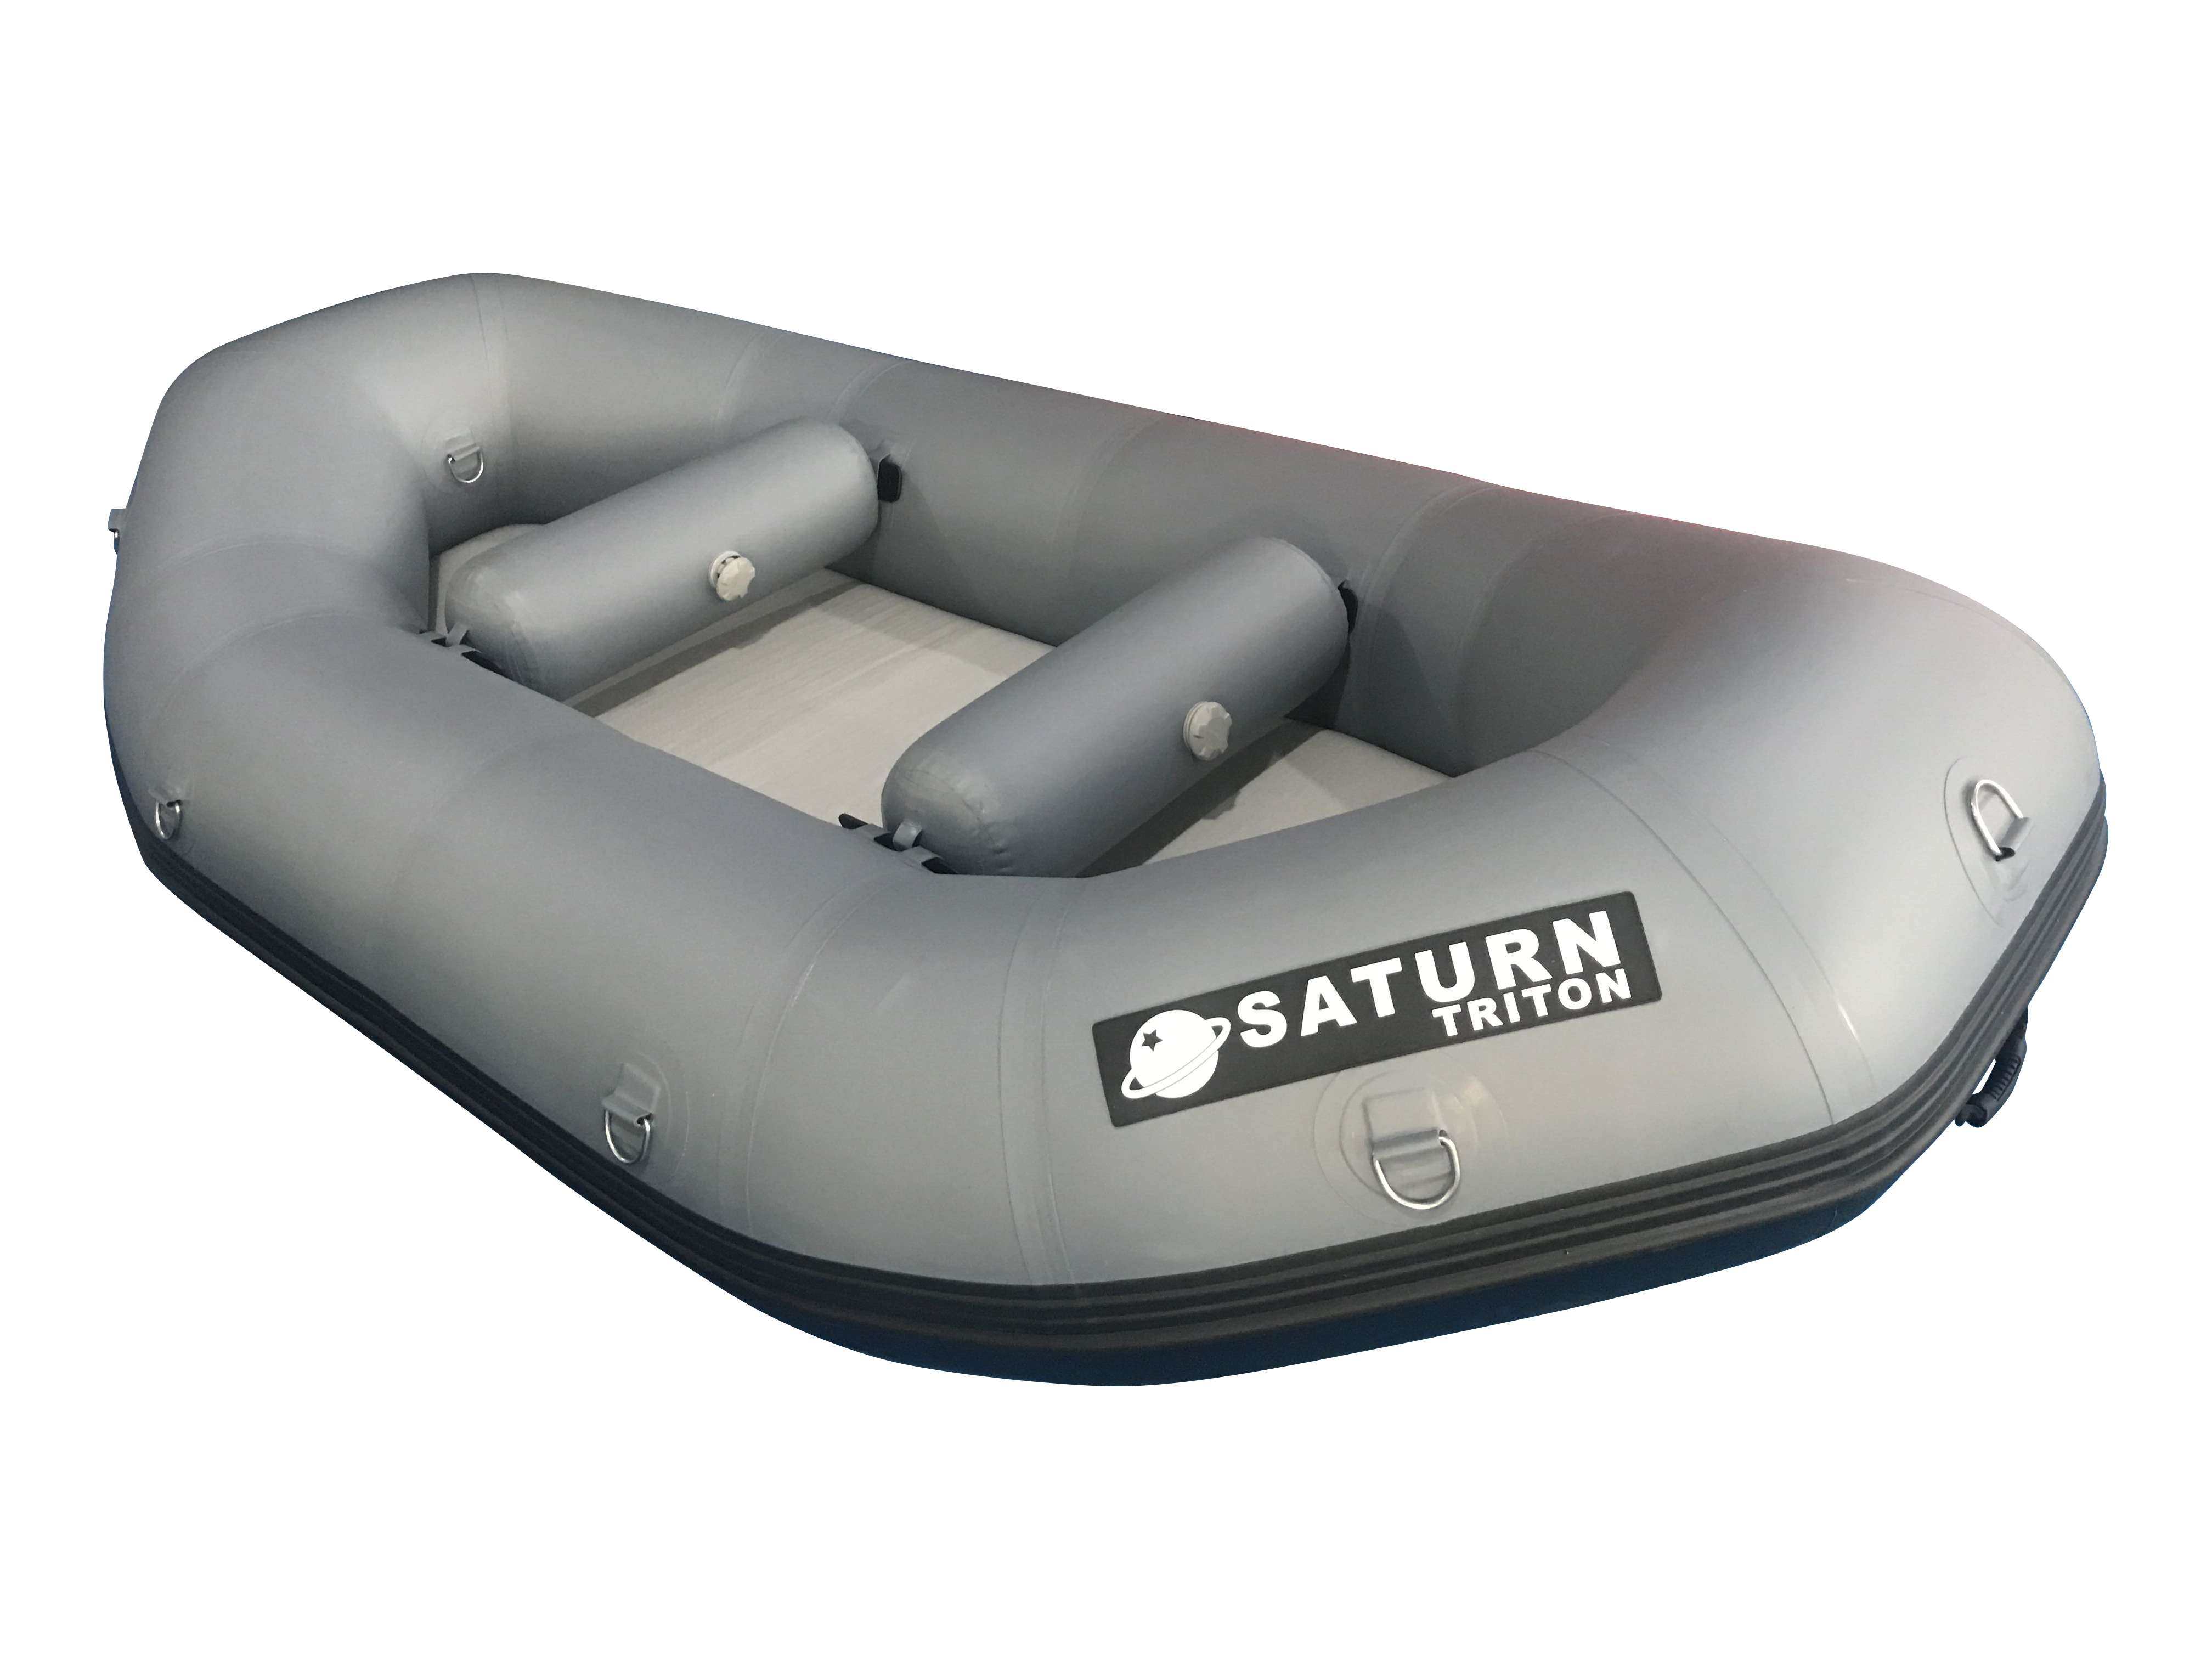 "2021 9'6"" Saturn Triton Whitewater Raft - Dark Grey"